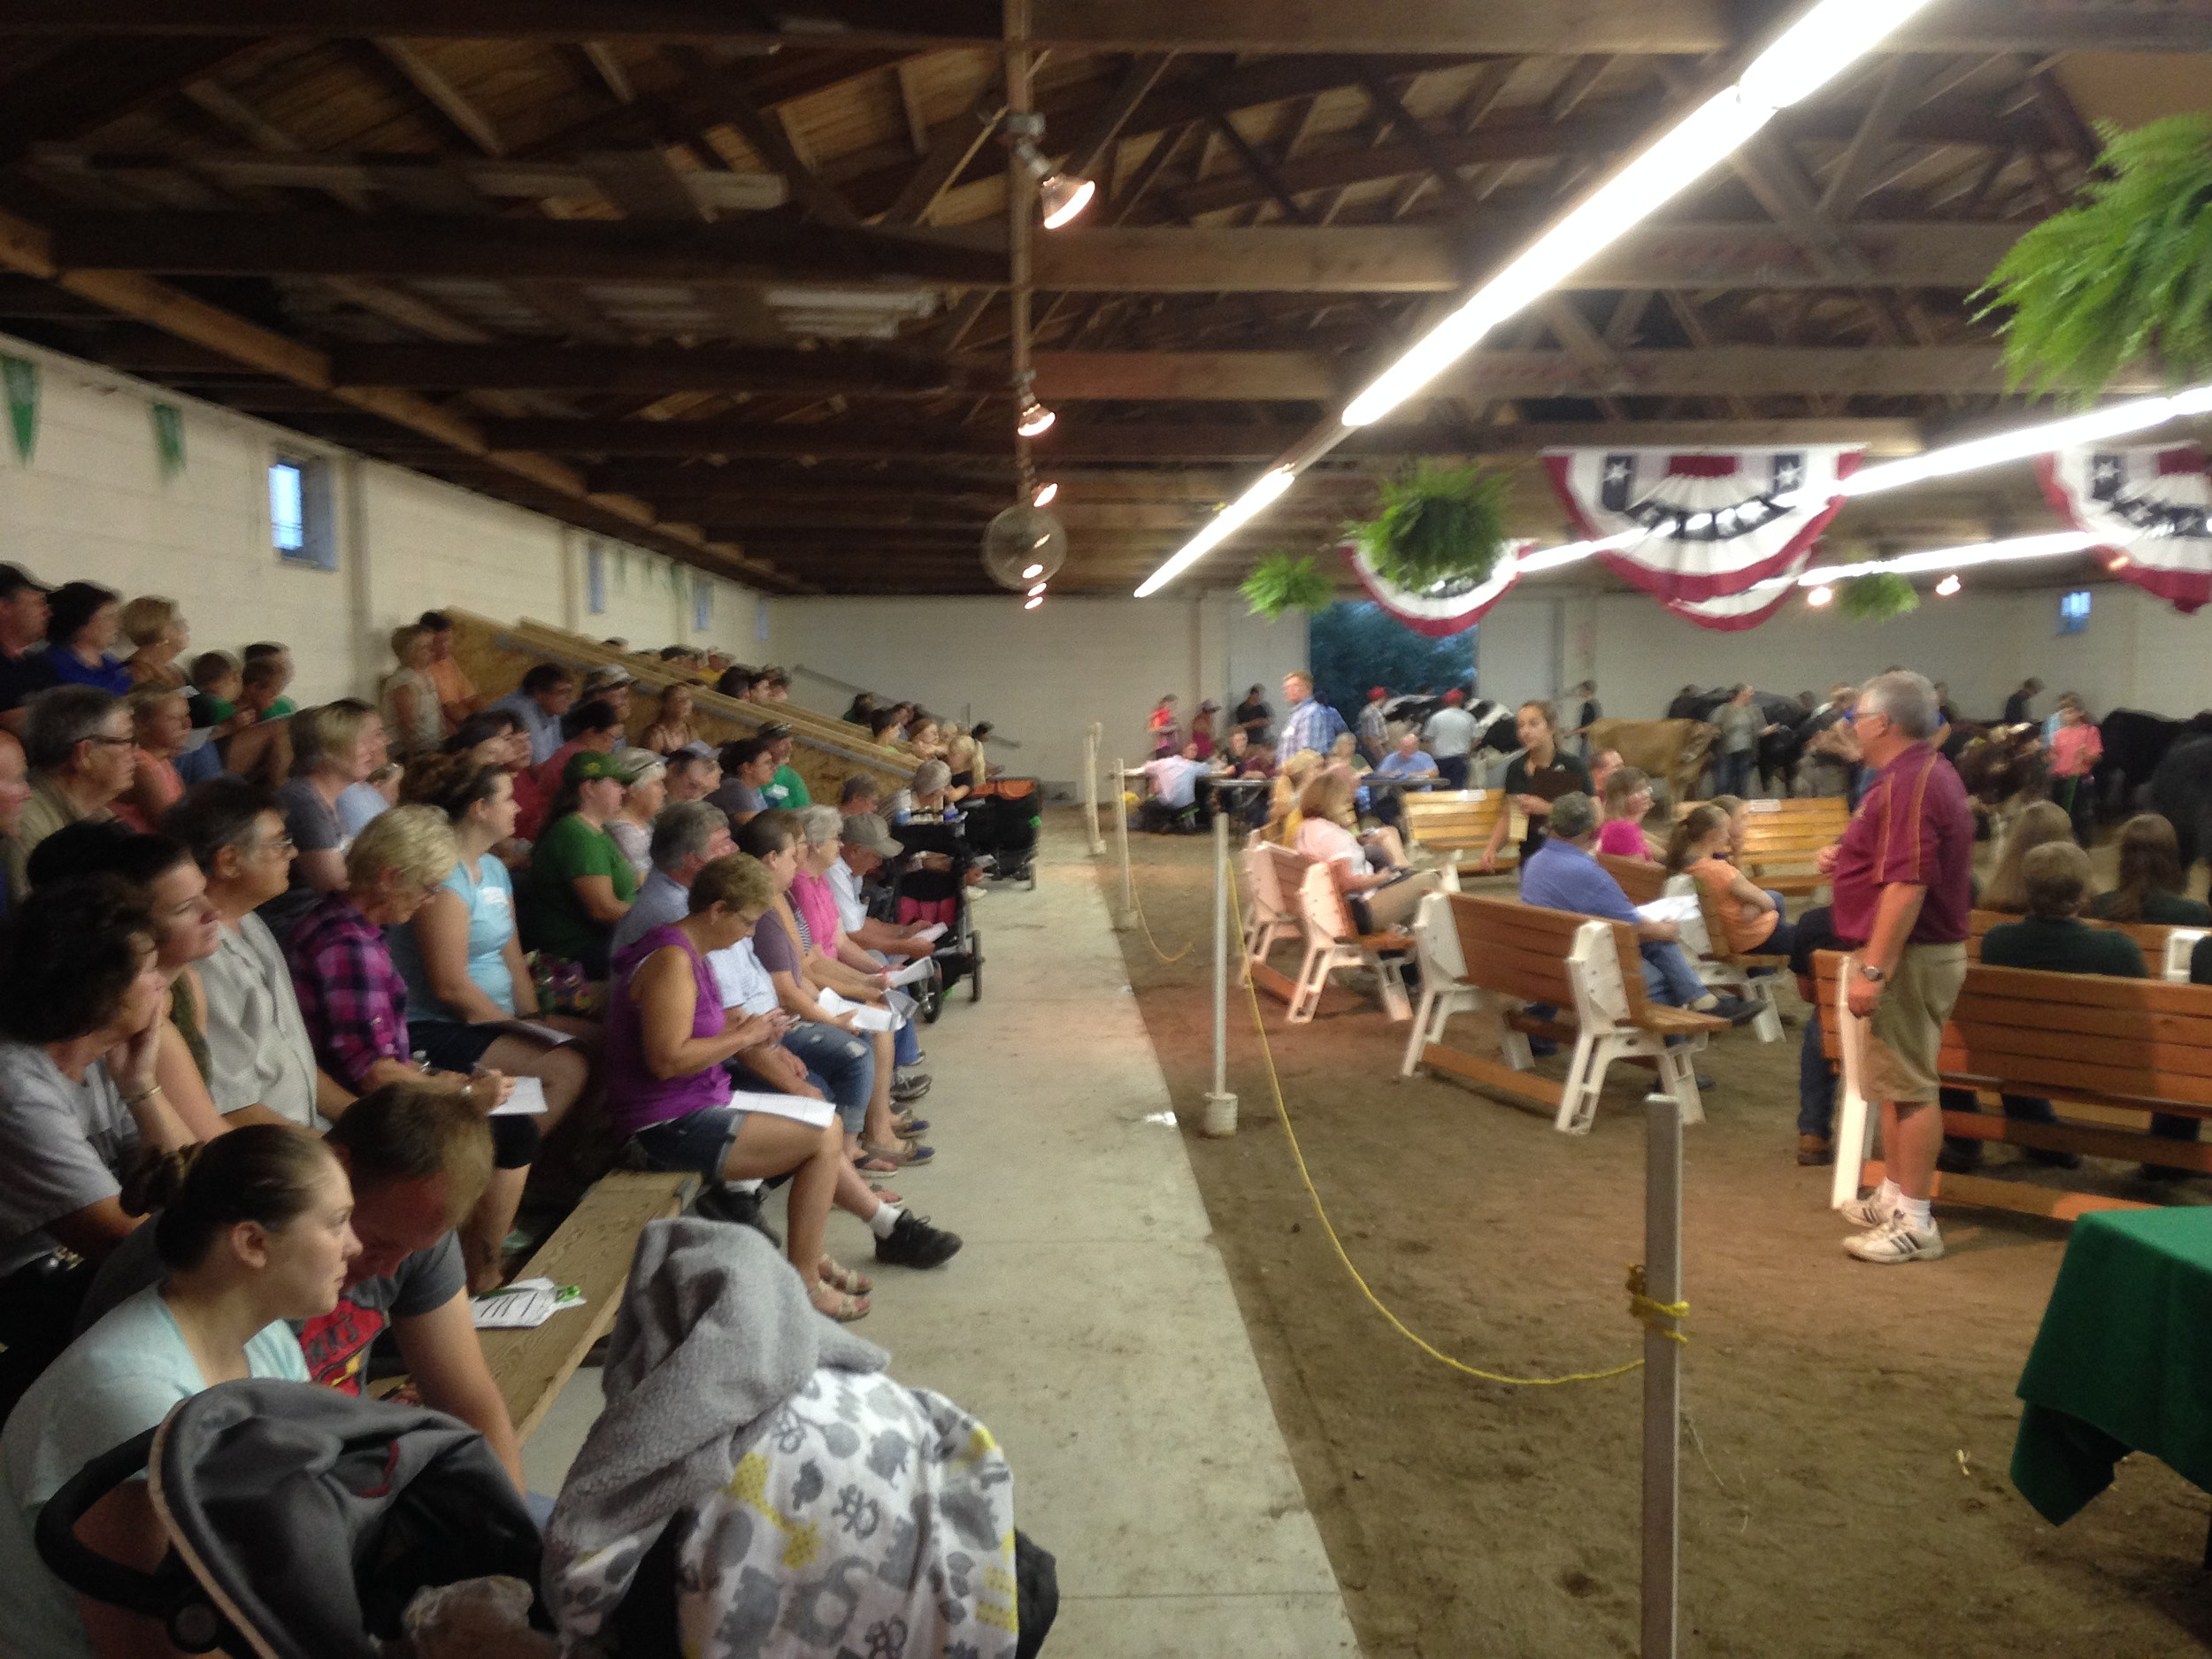 Rice County 4-H Livestock Auction Crowd